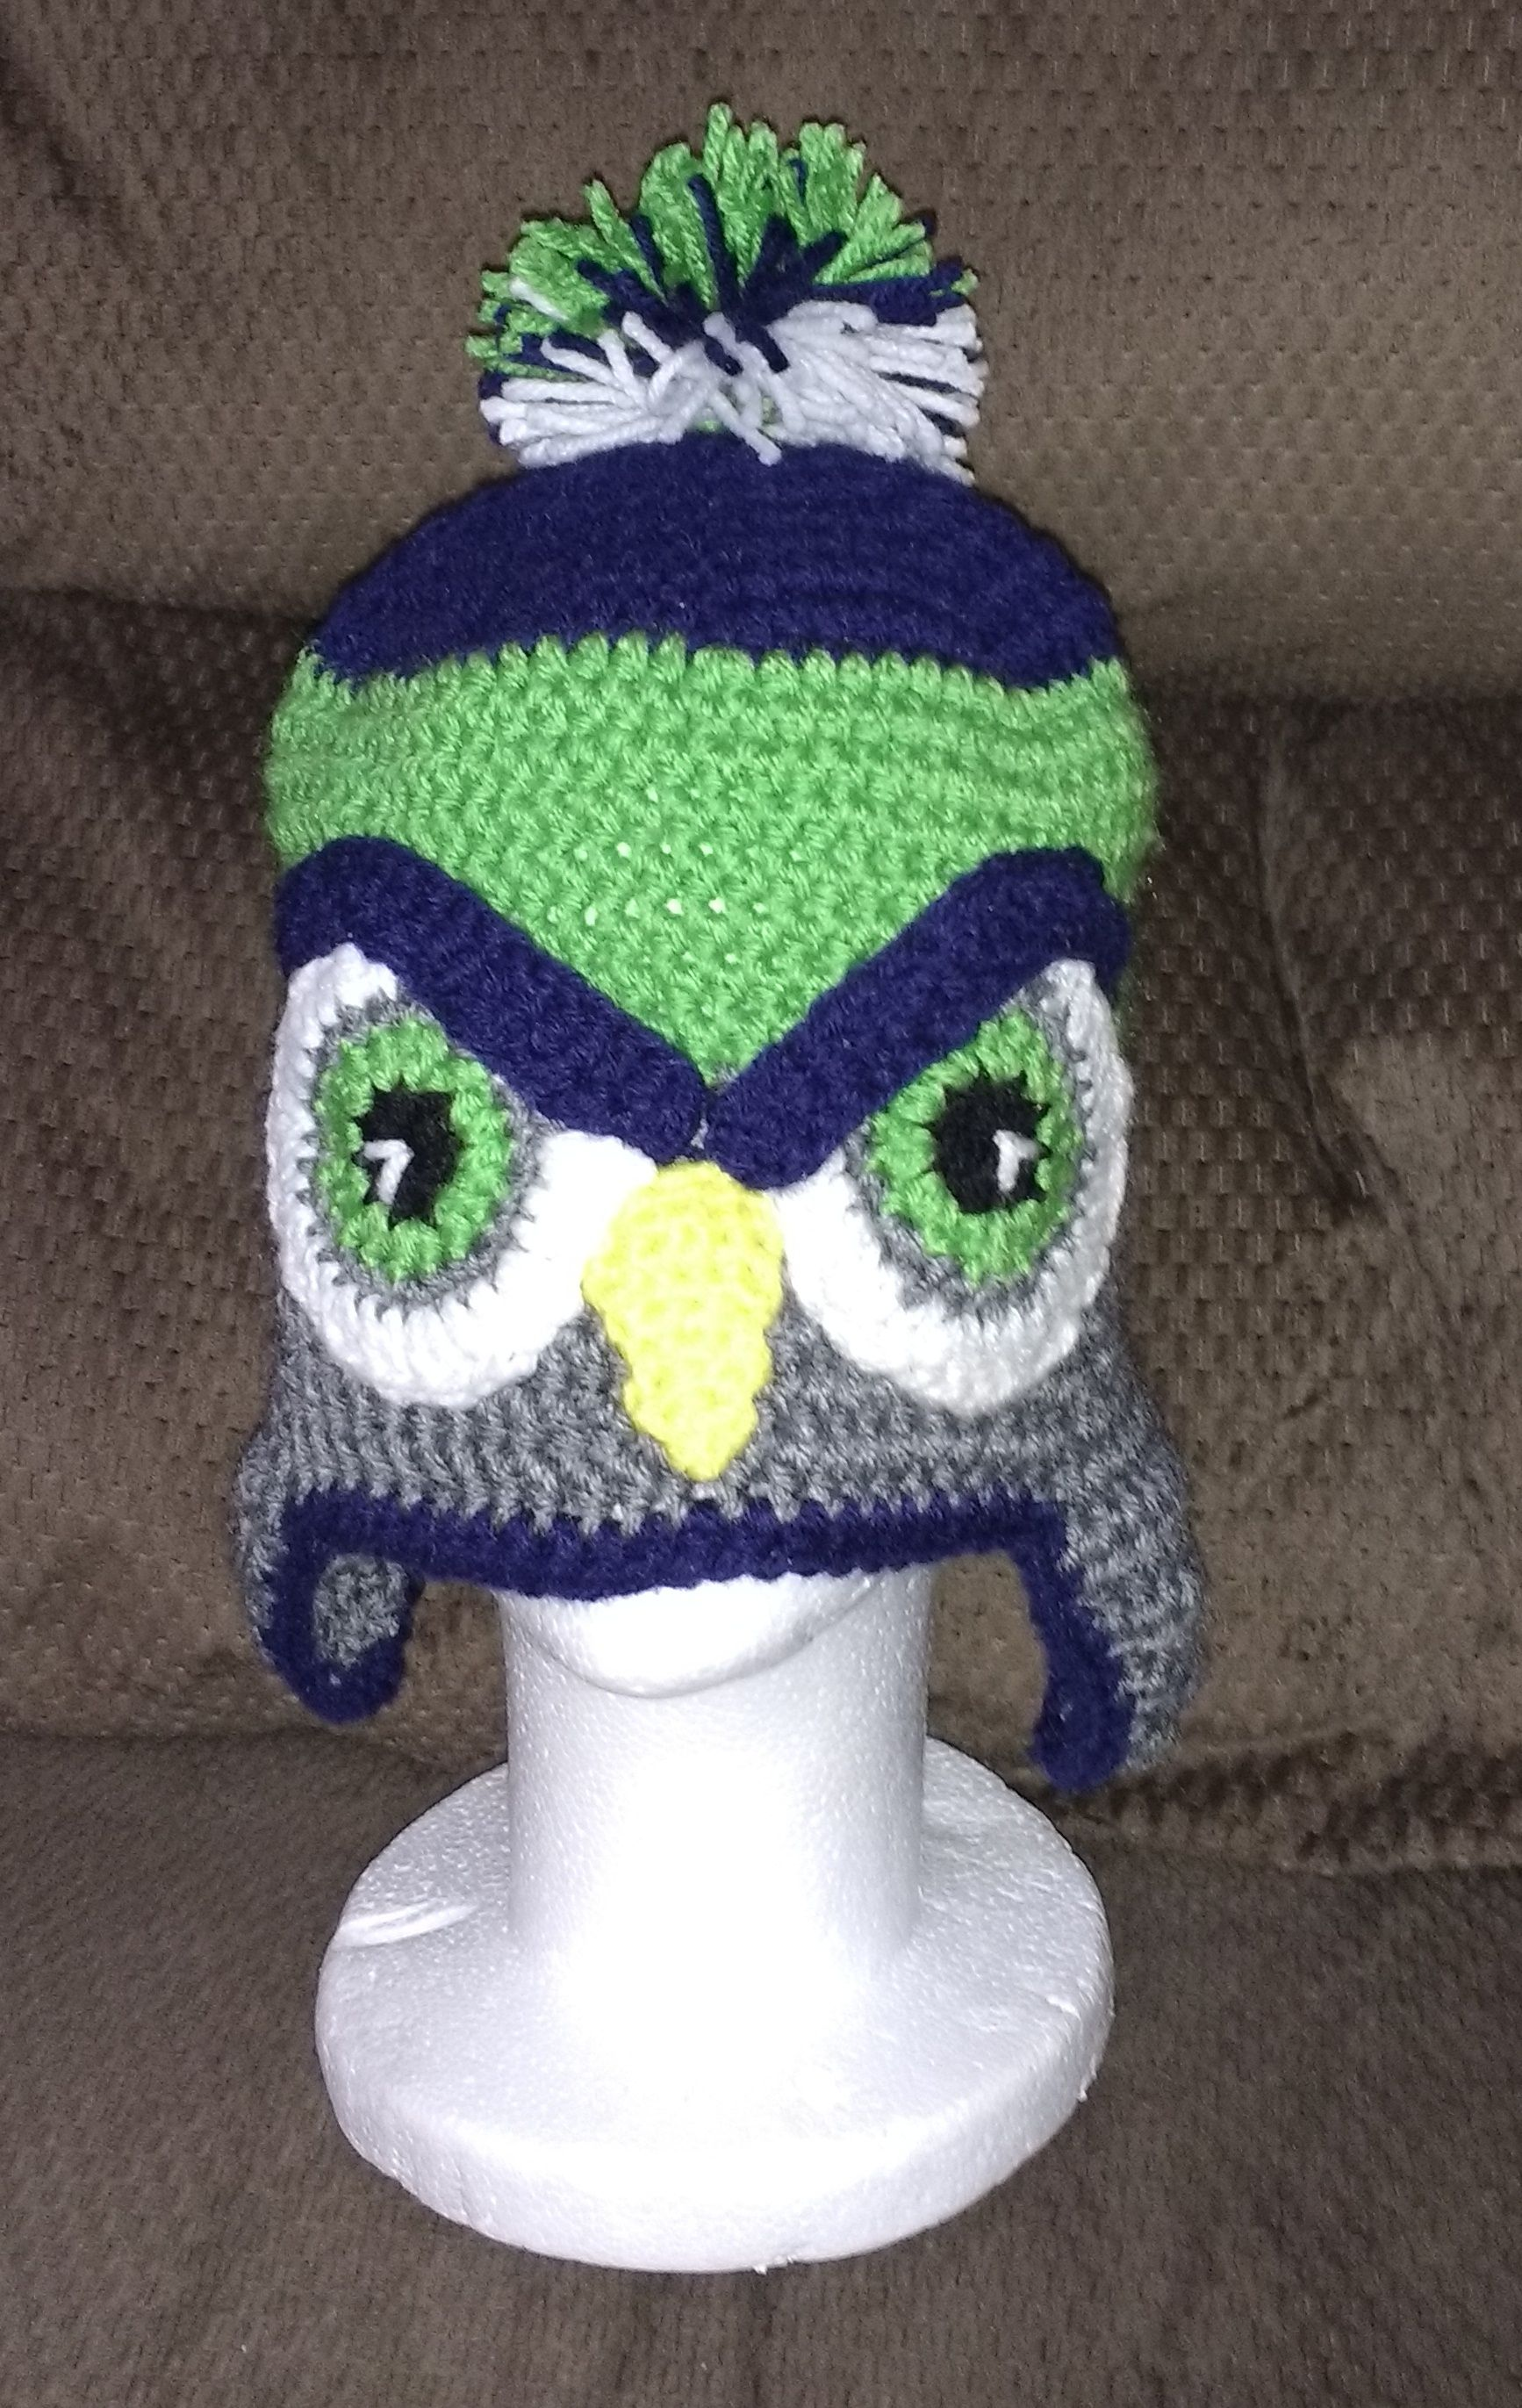 9bf0d1e11e6 Crochet project seattle seahawks hat i made this hat for grandson i didnt  have a pattern